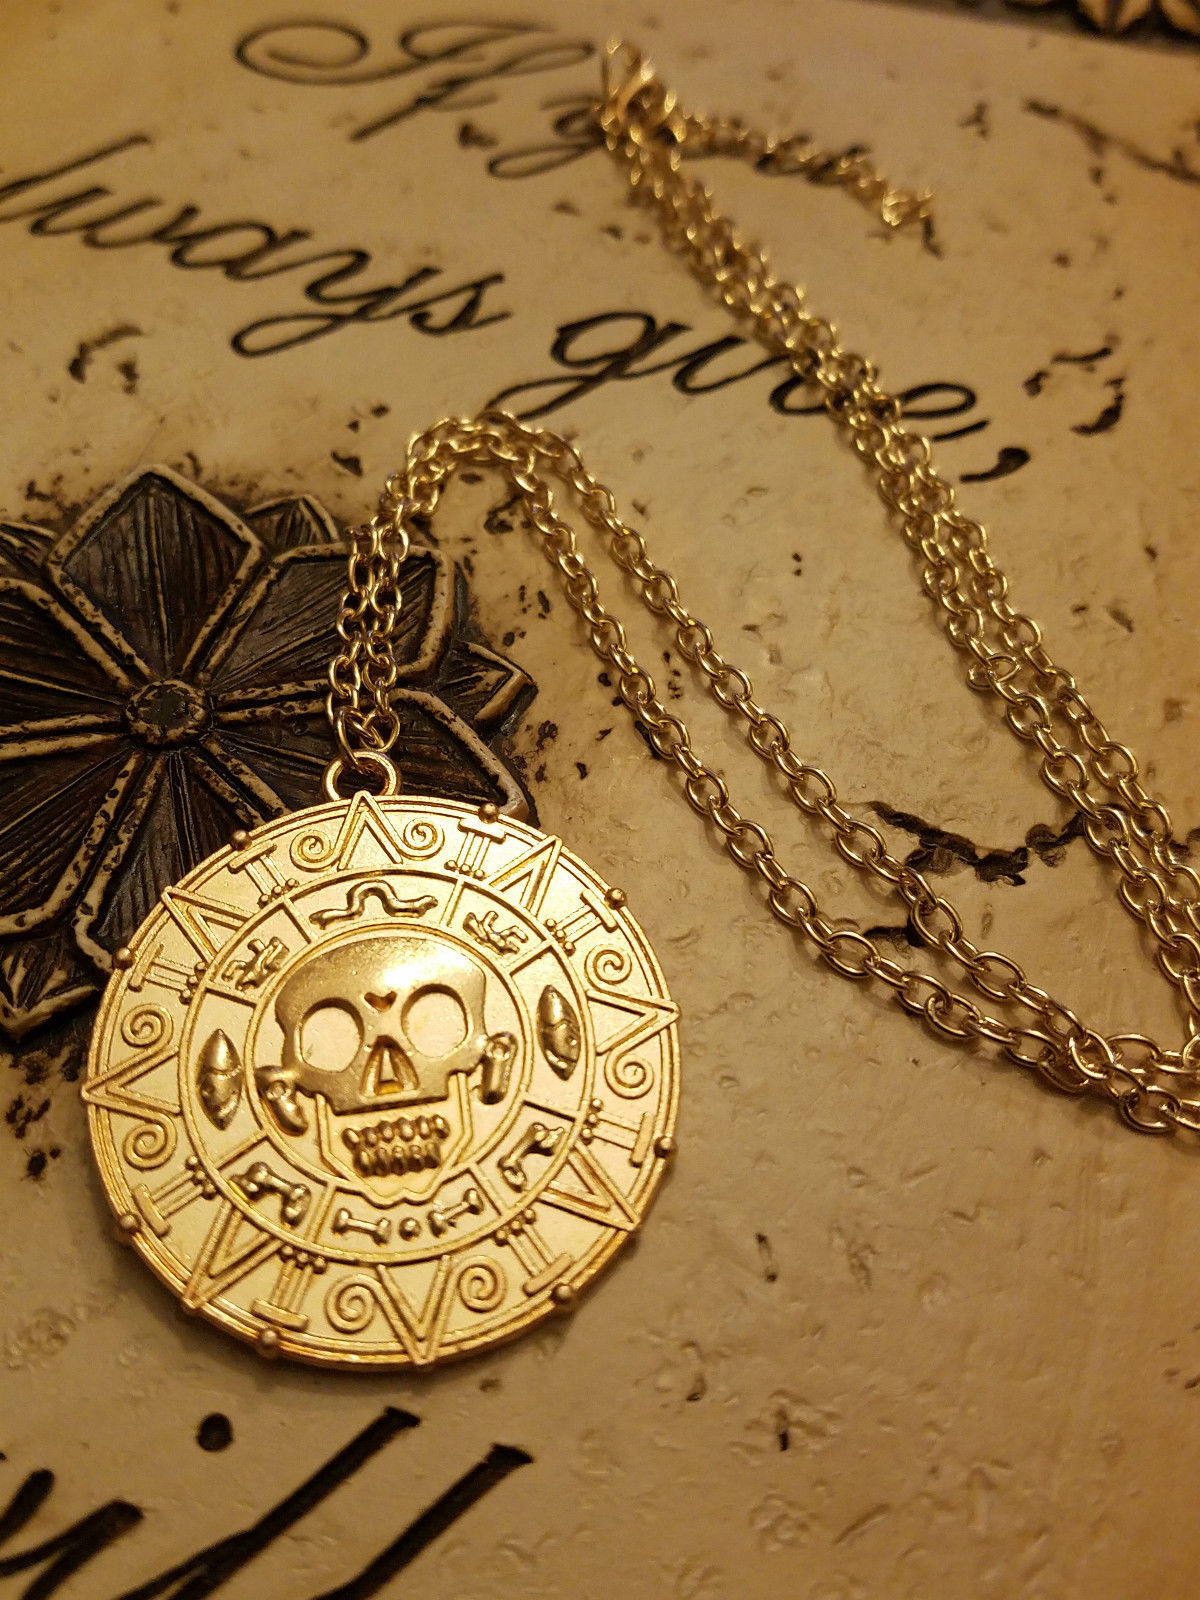 necklace chanel fashion from cambon rue products gold medallion of amarcord coin vintage